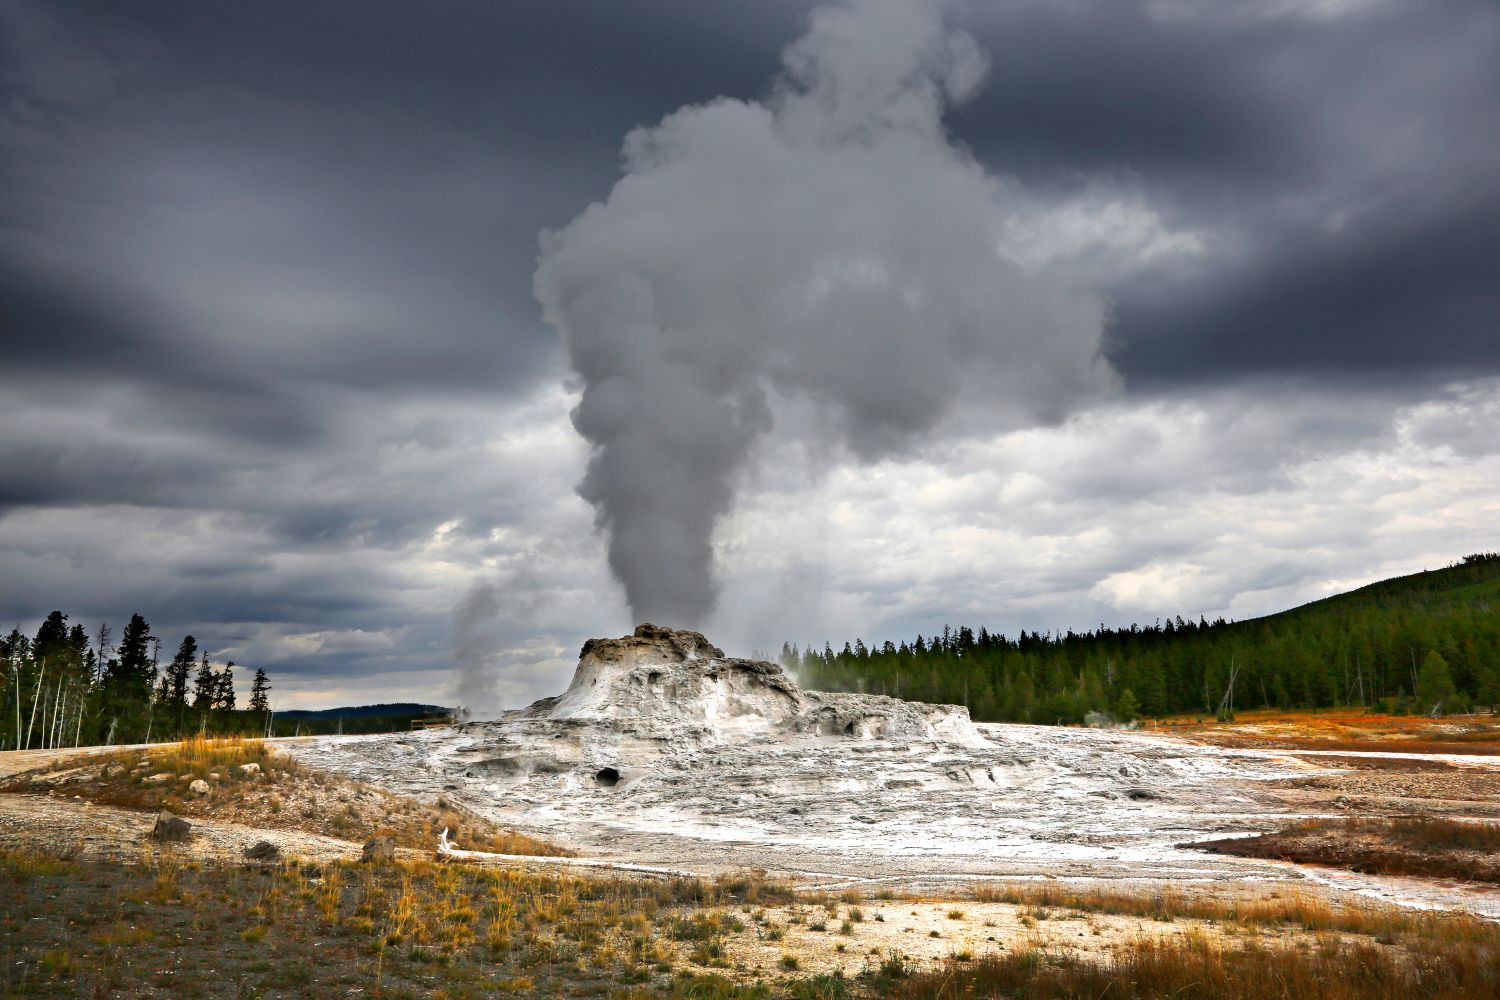 Castle Geyser Yellowstone erupting shortly before an impending storm